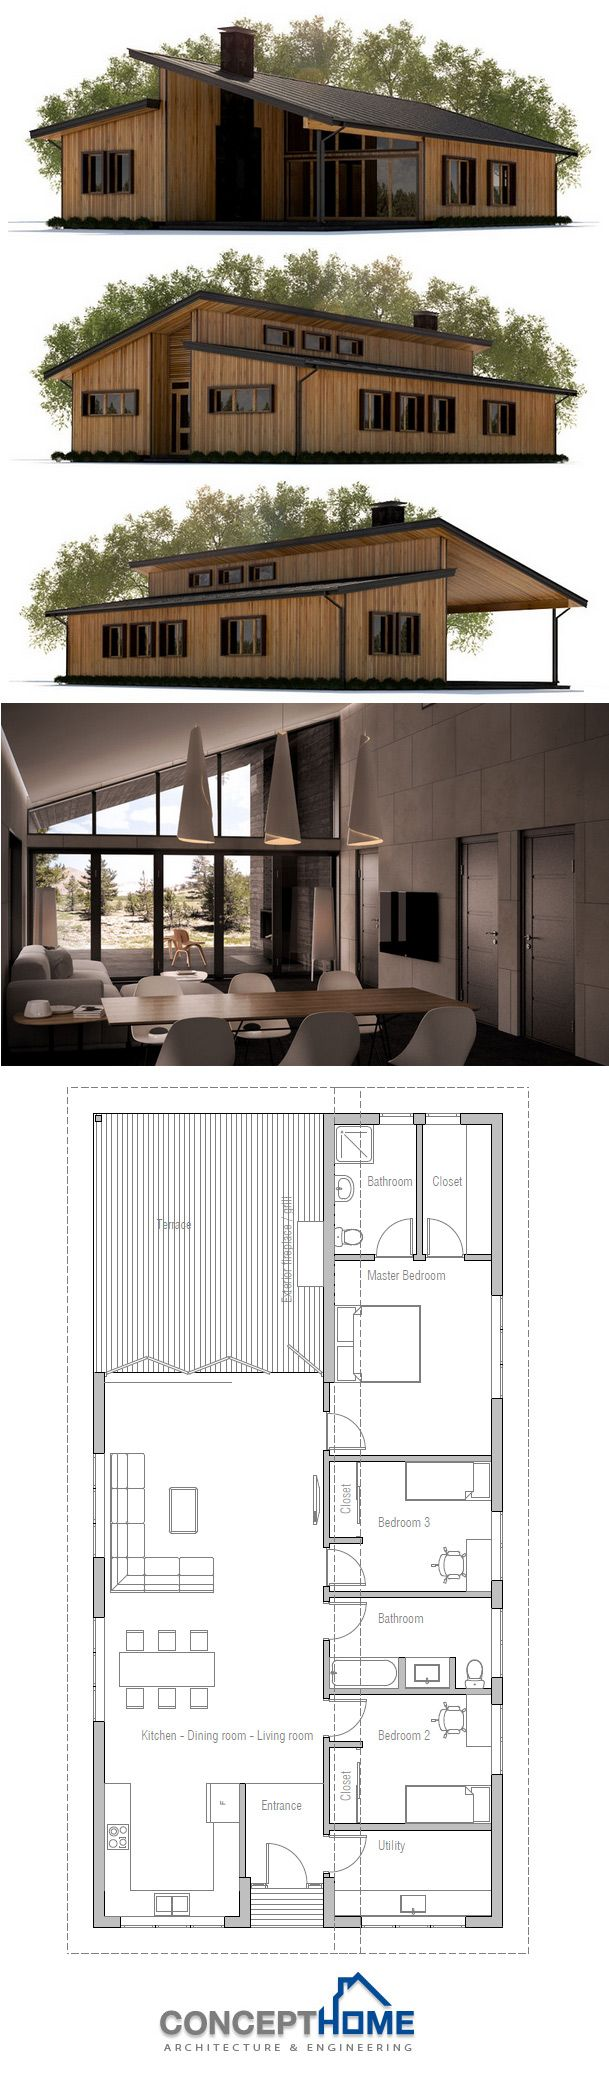 simple 3 bedroom house plans%0A Narrow House Plan